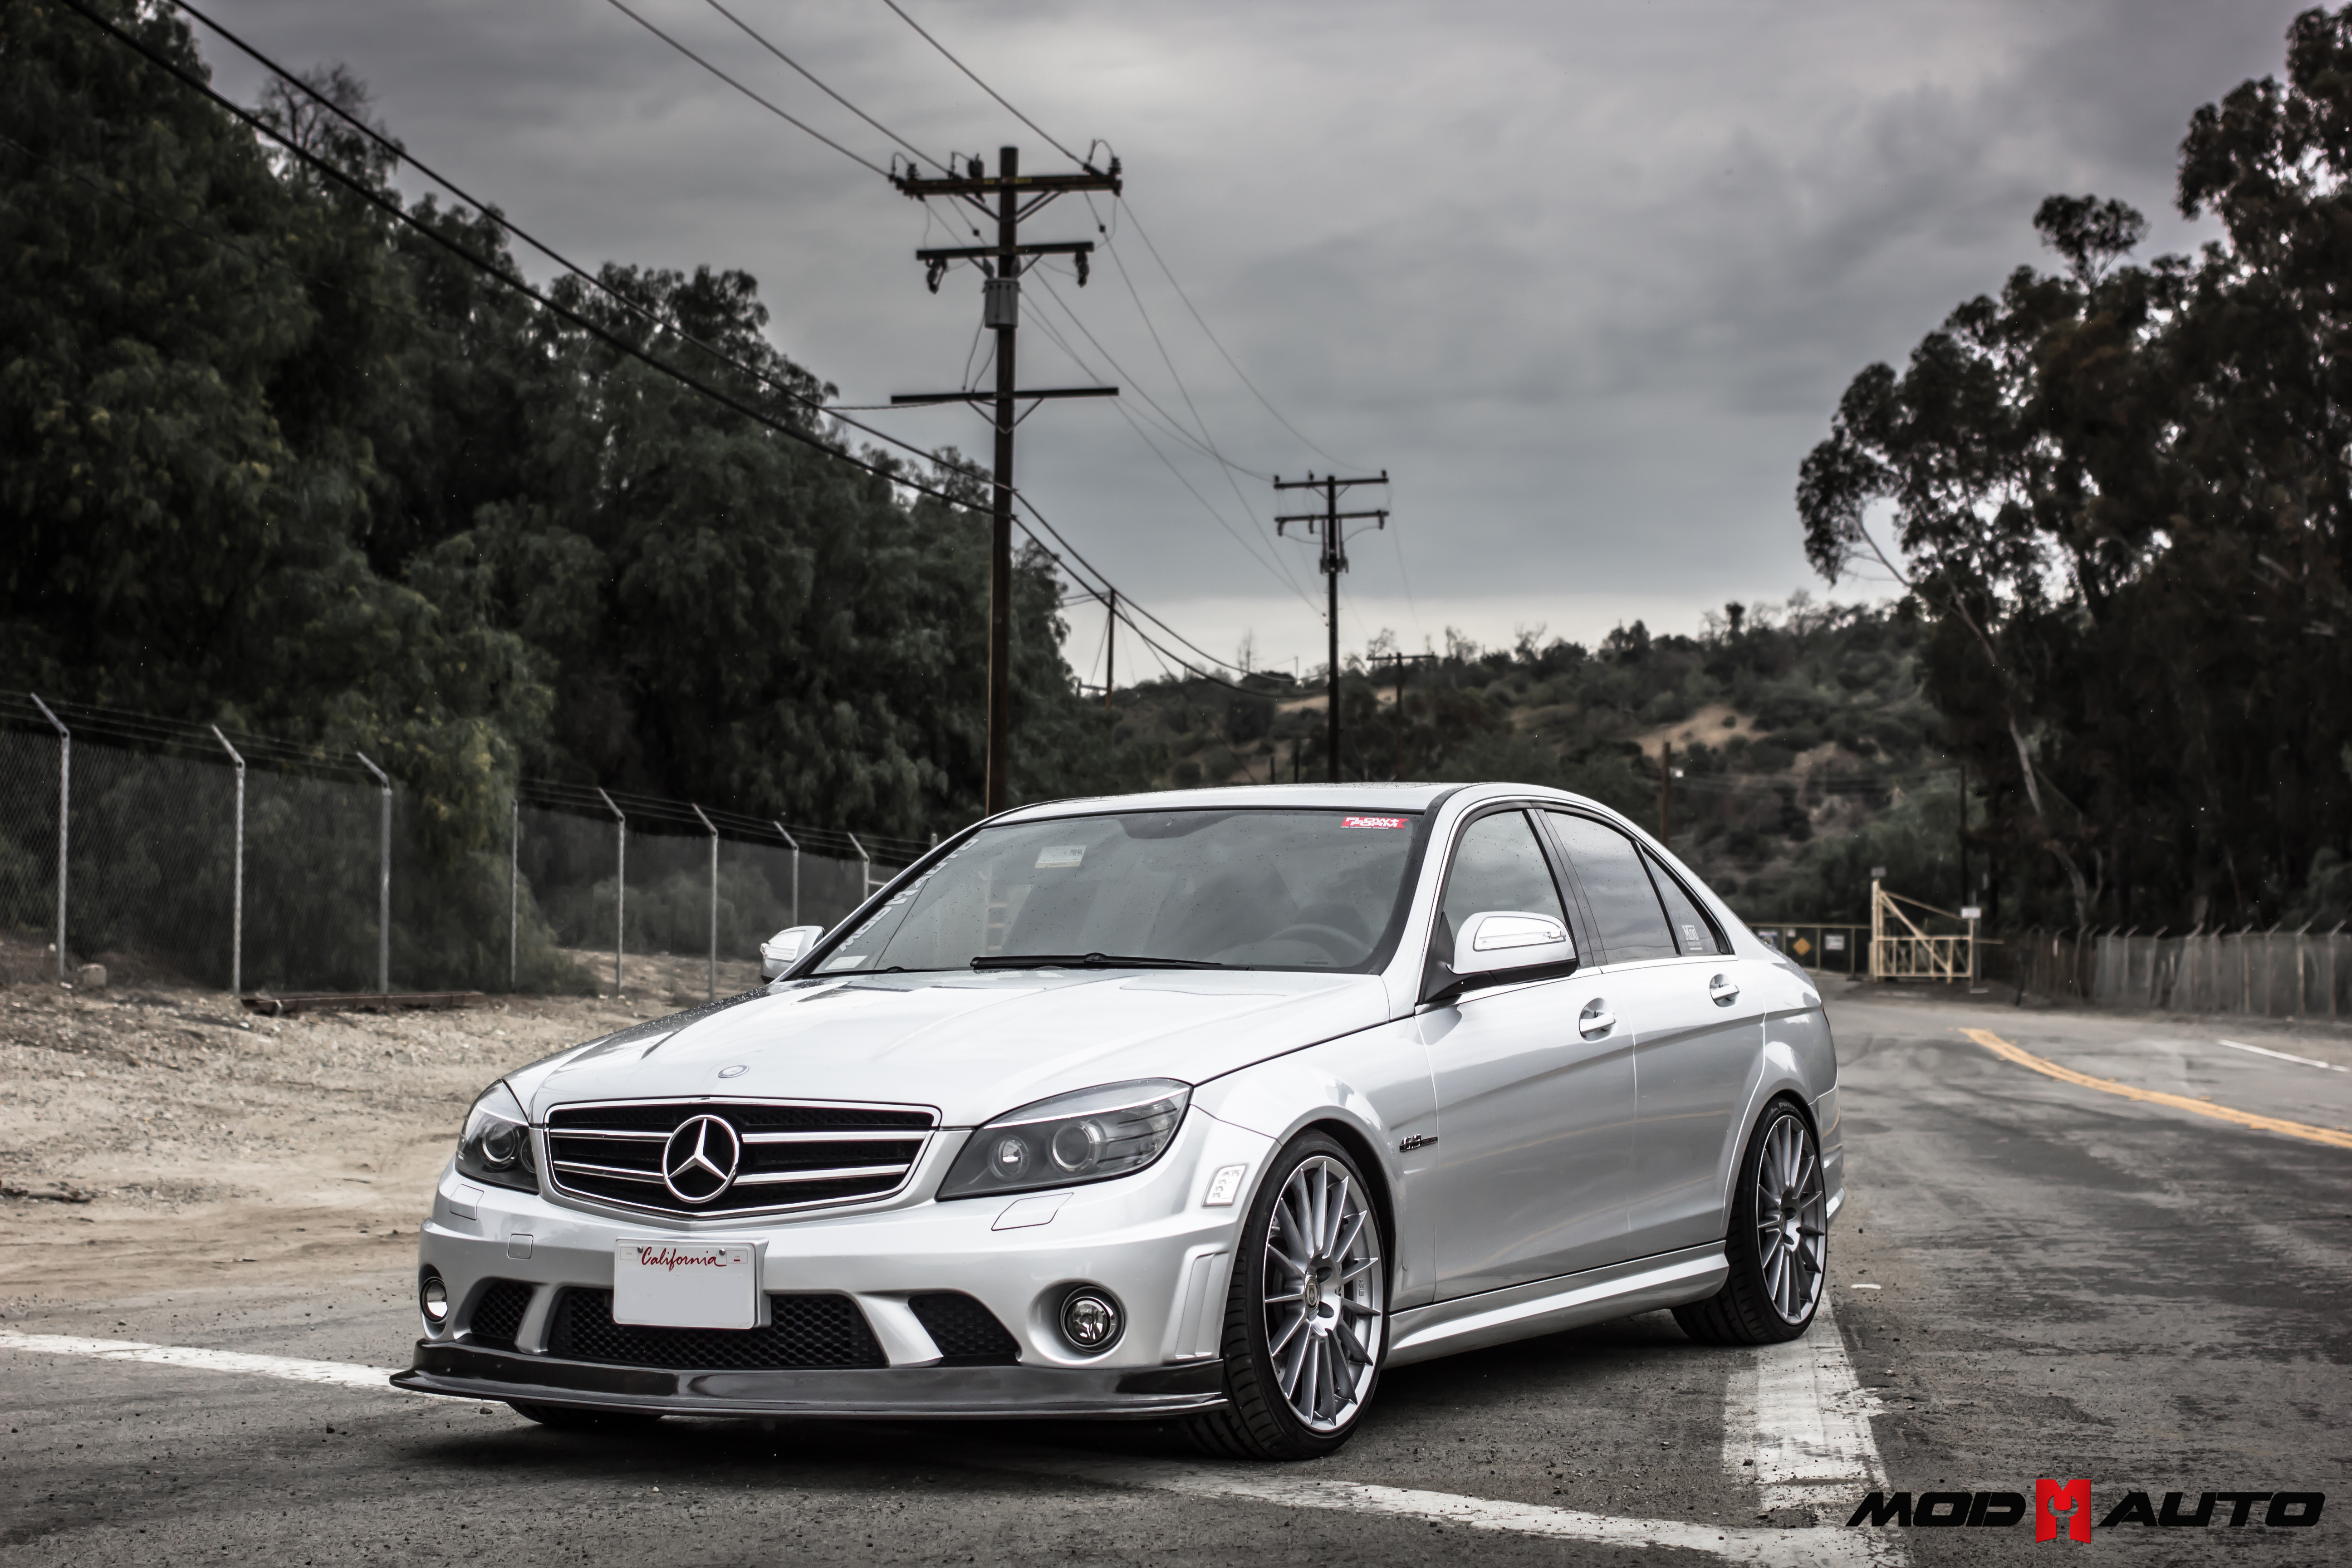 project c63 amg my experience modding my w204 by ron. Black Bedroom Furniture Sets. Home Design Ideas